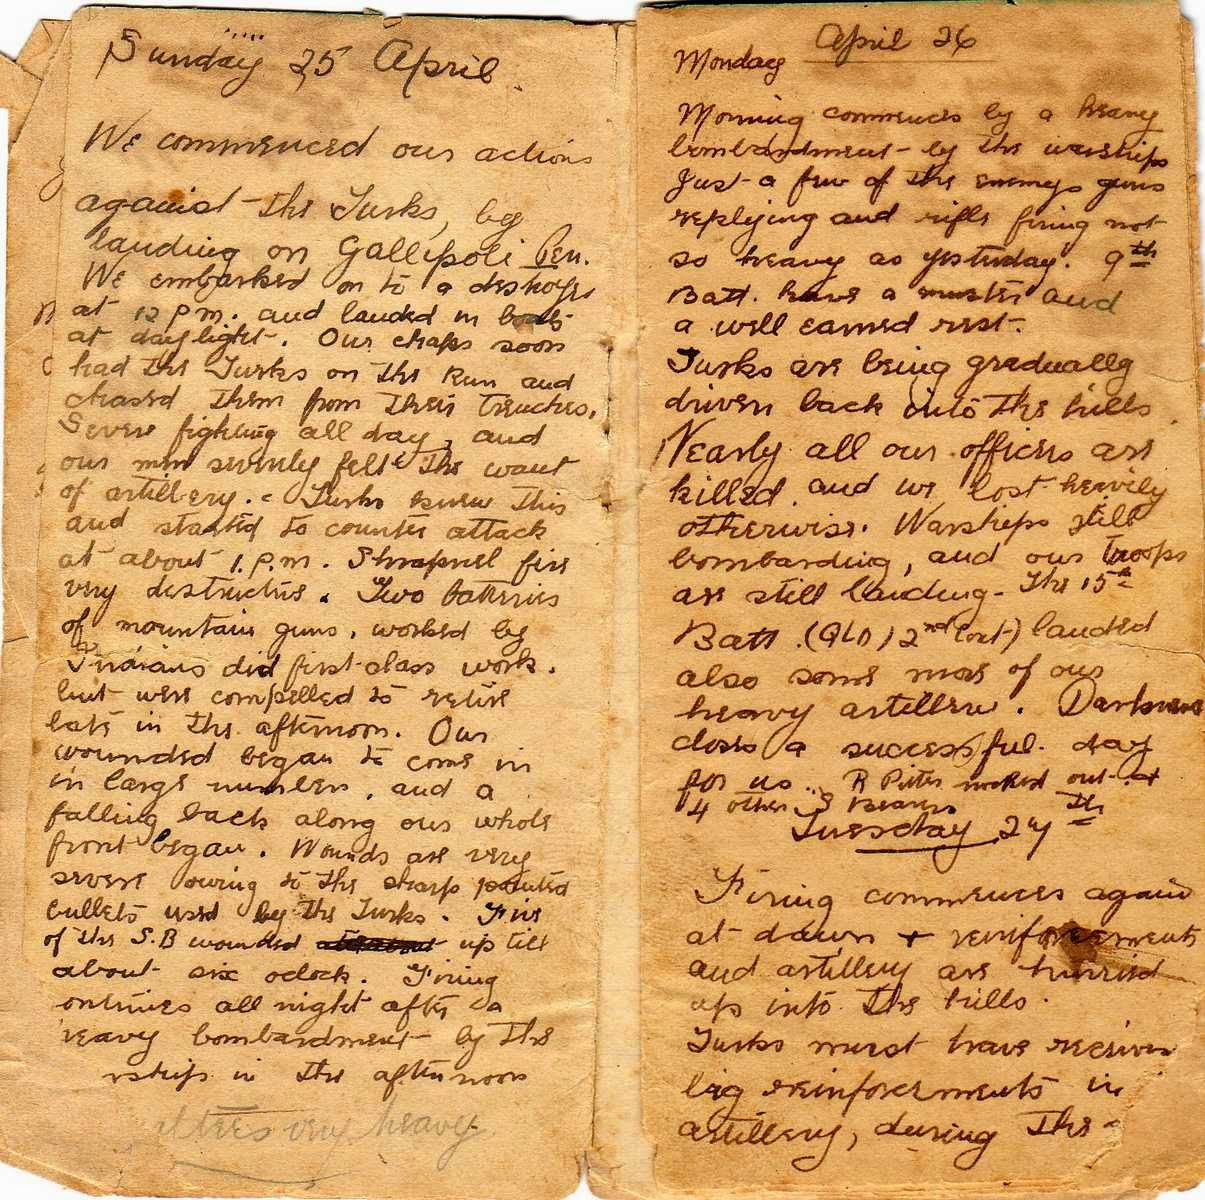 Image of page in diary